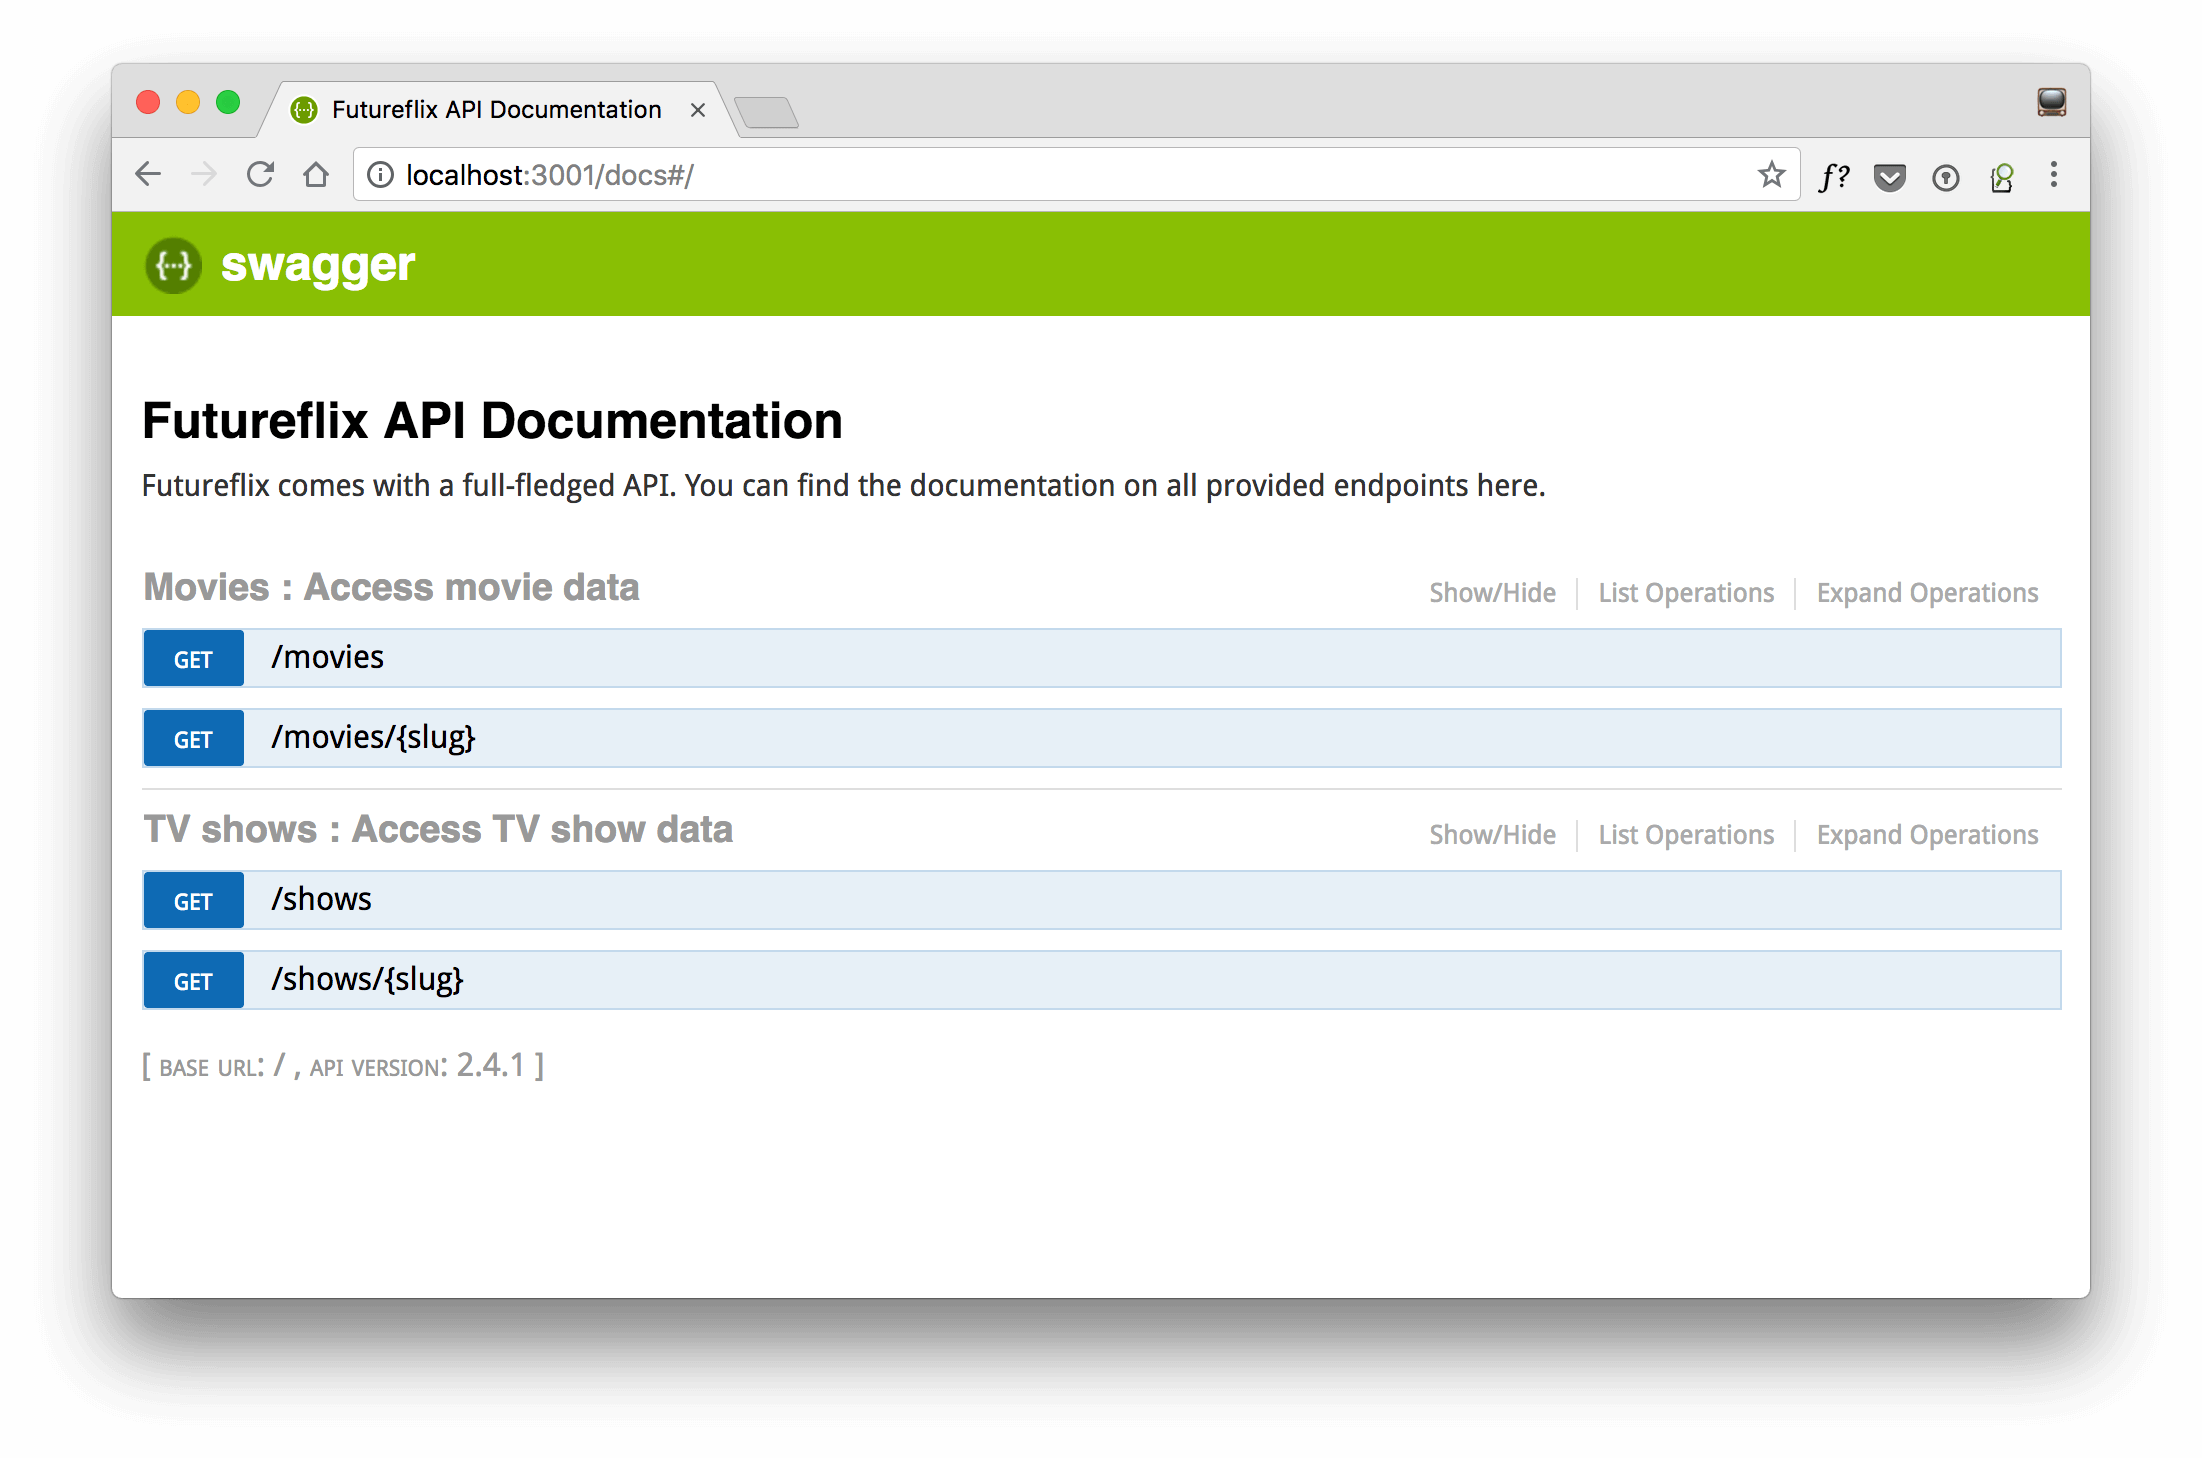 learn hapi — Create an API Documentation with Swagger